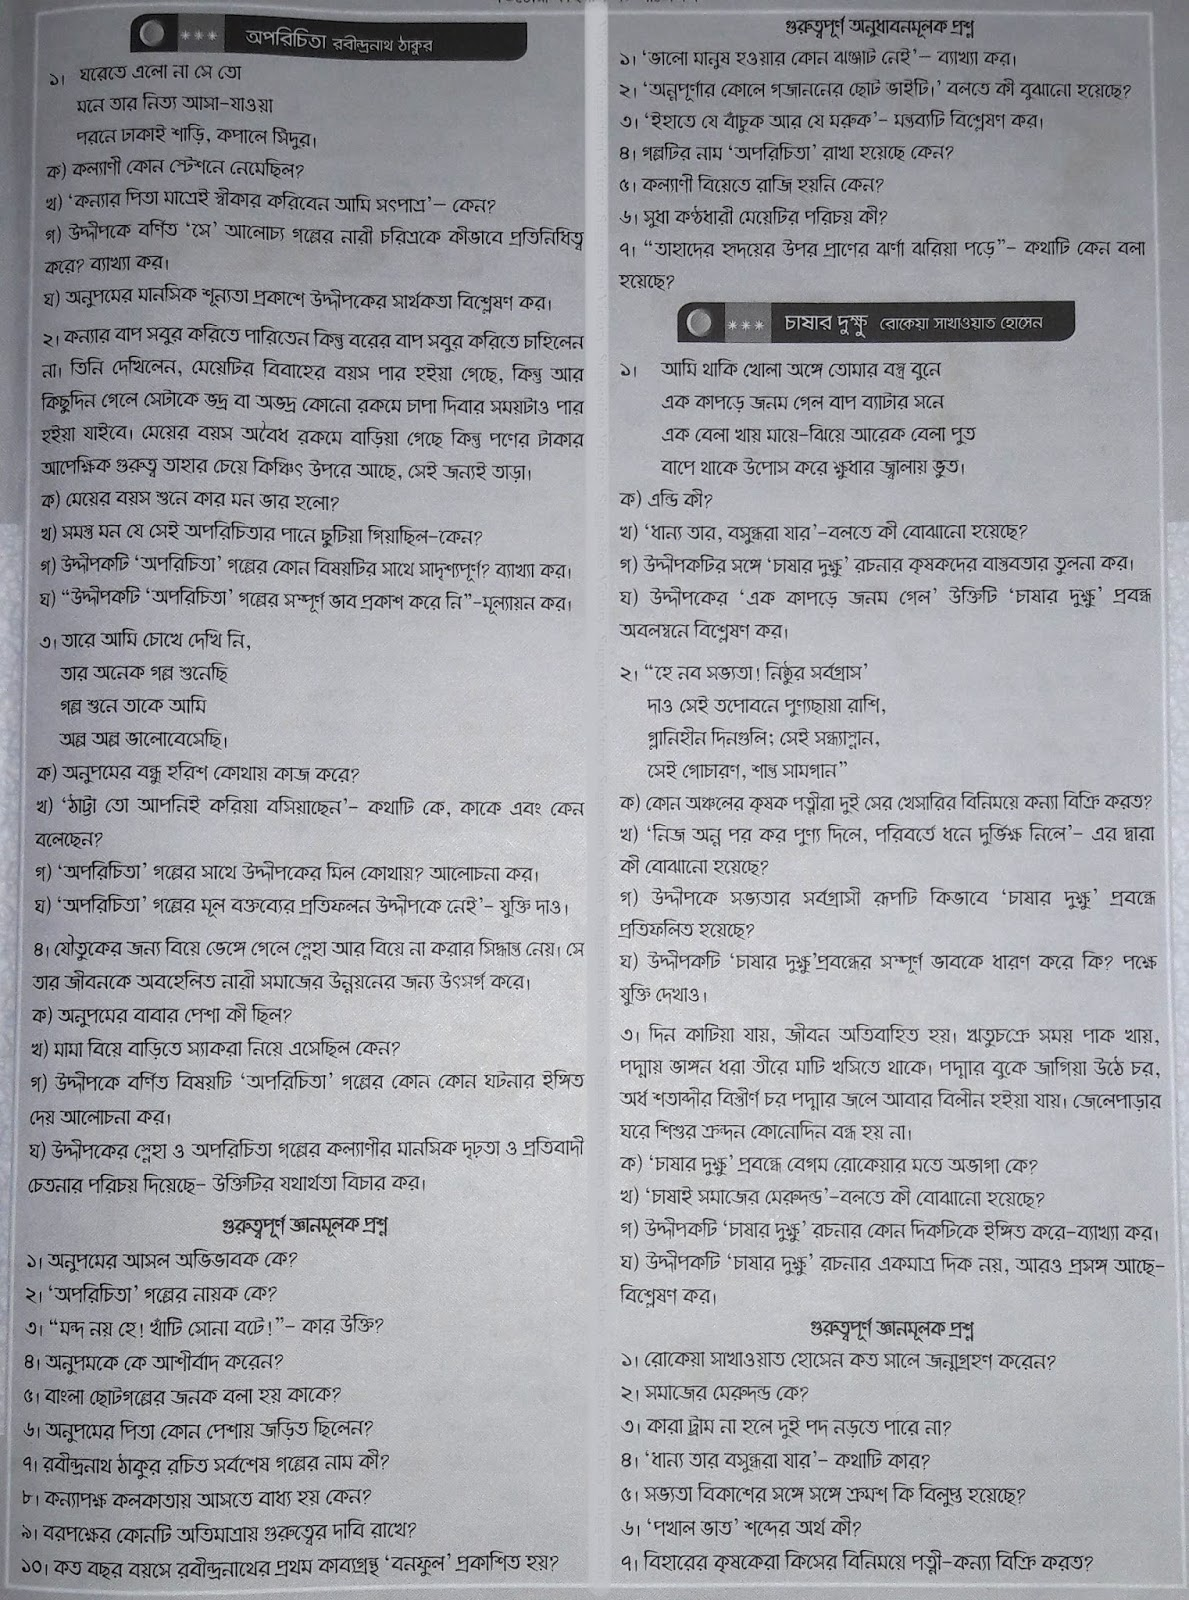 hsc bangla 1st paper question paper, model question, mcq question, question pattern, syllabus for dhaka board, all boards